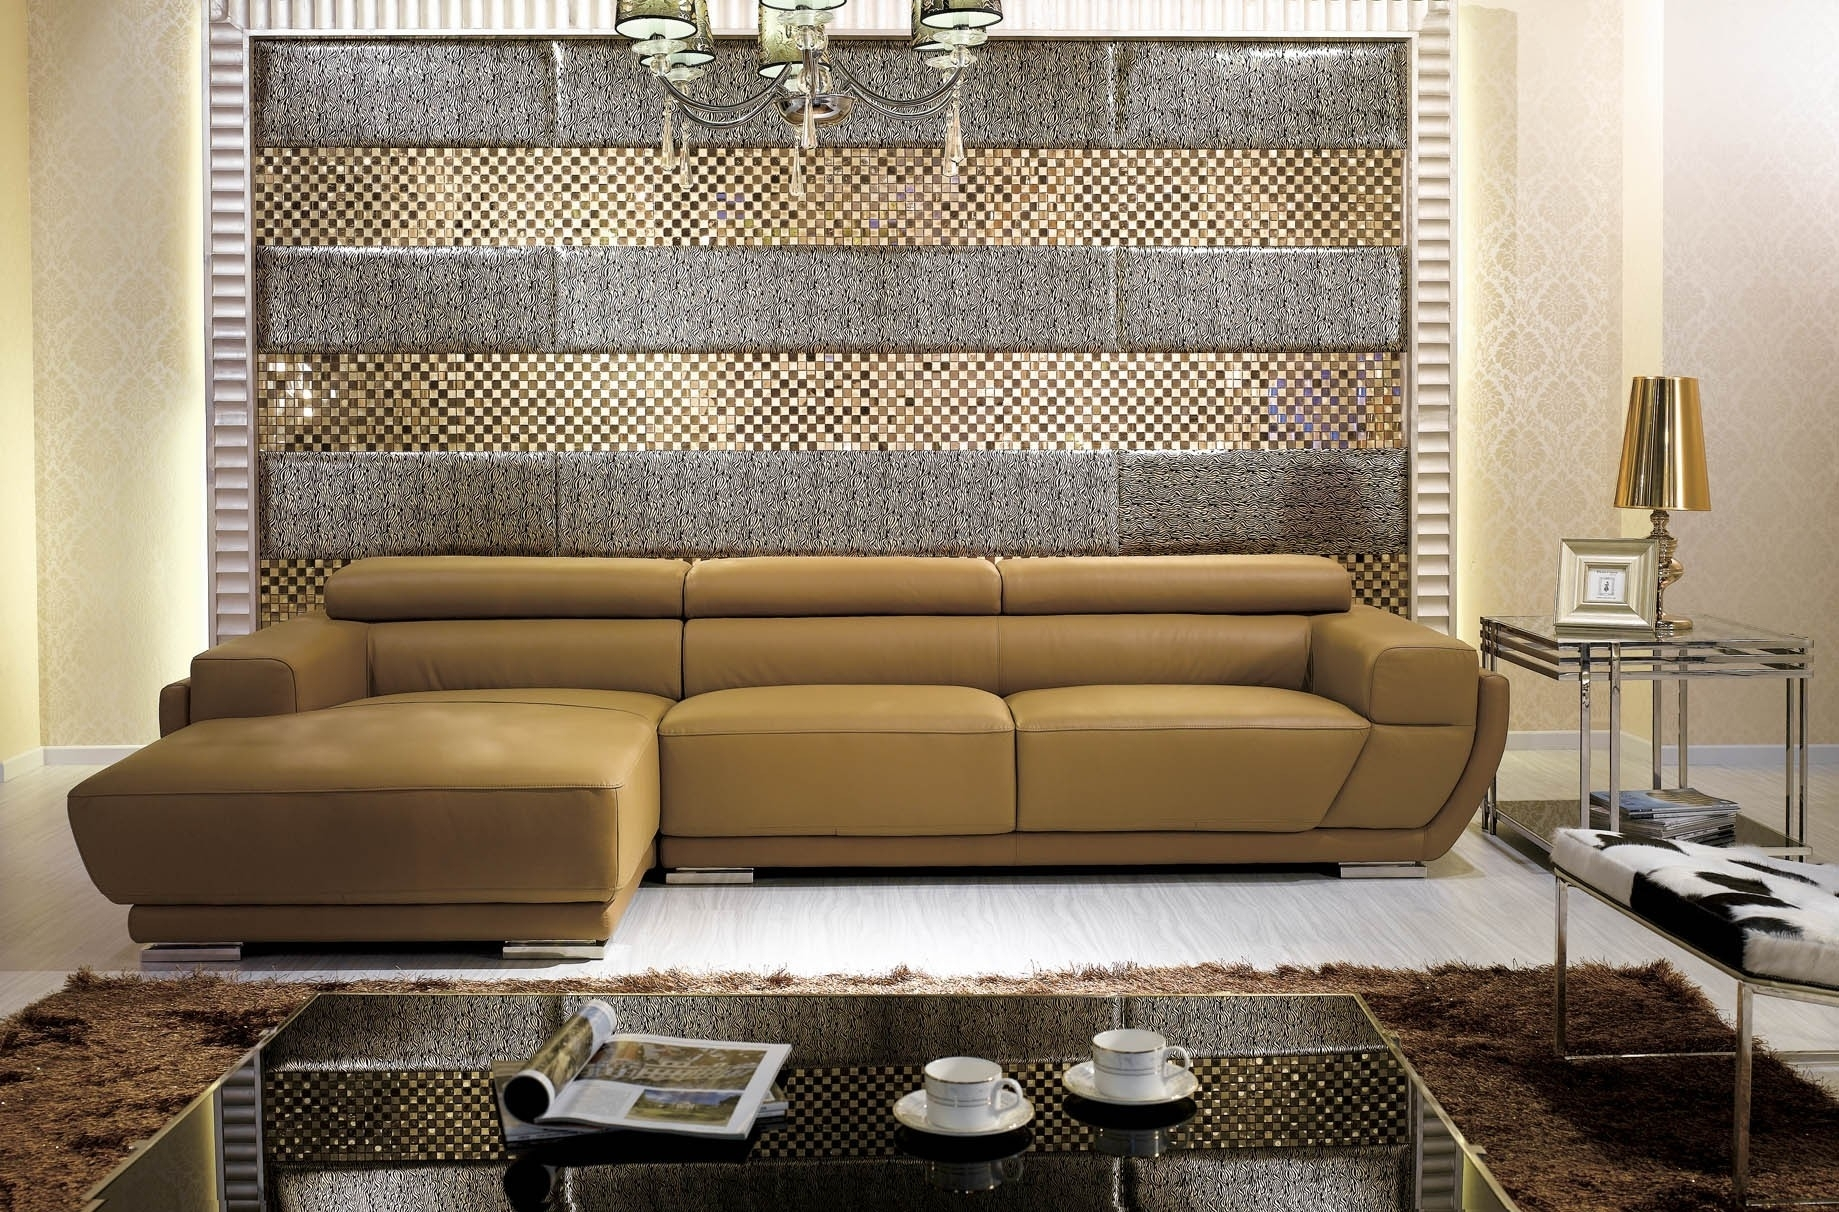 More Views K Modern Camel Italian Leather Sectional Sofa | Modern Throughout Camel Sectional Sofas (Image 8 of 10)